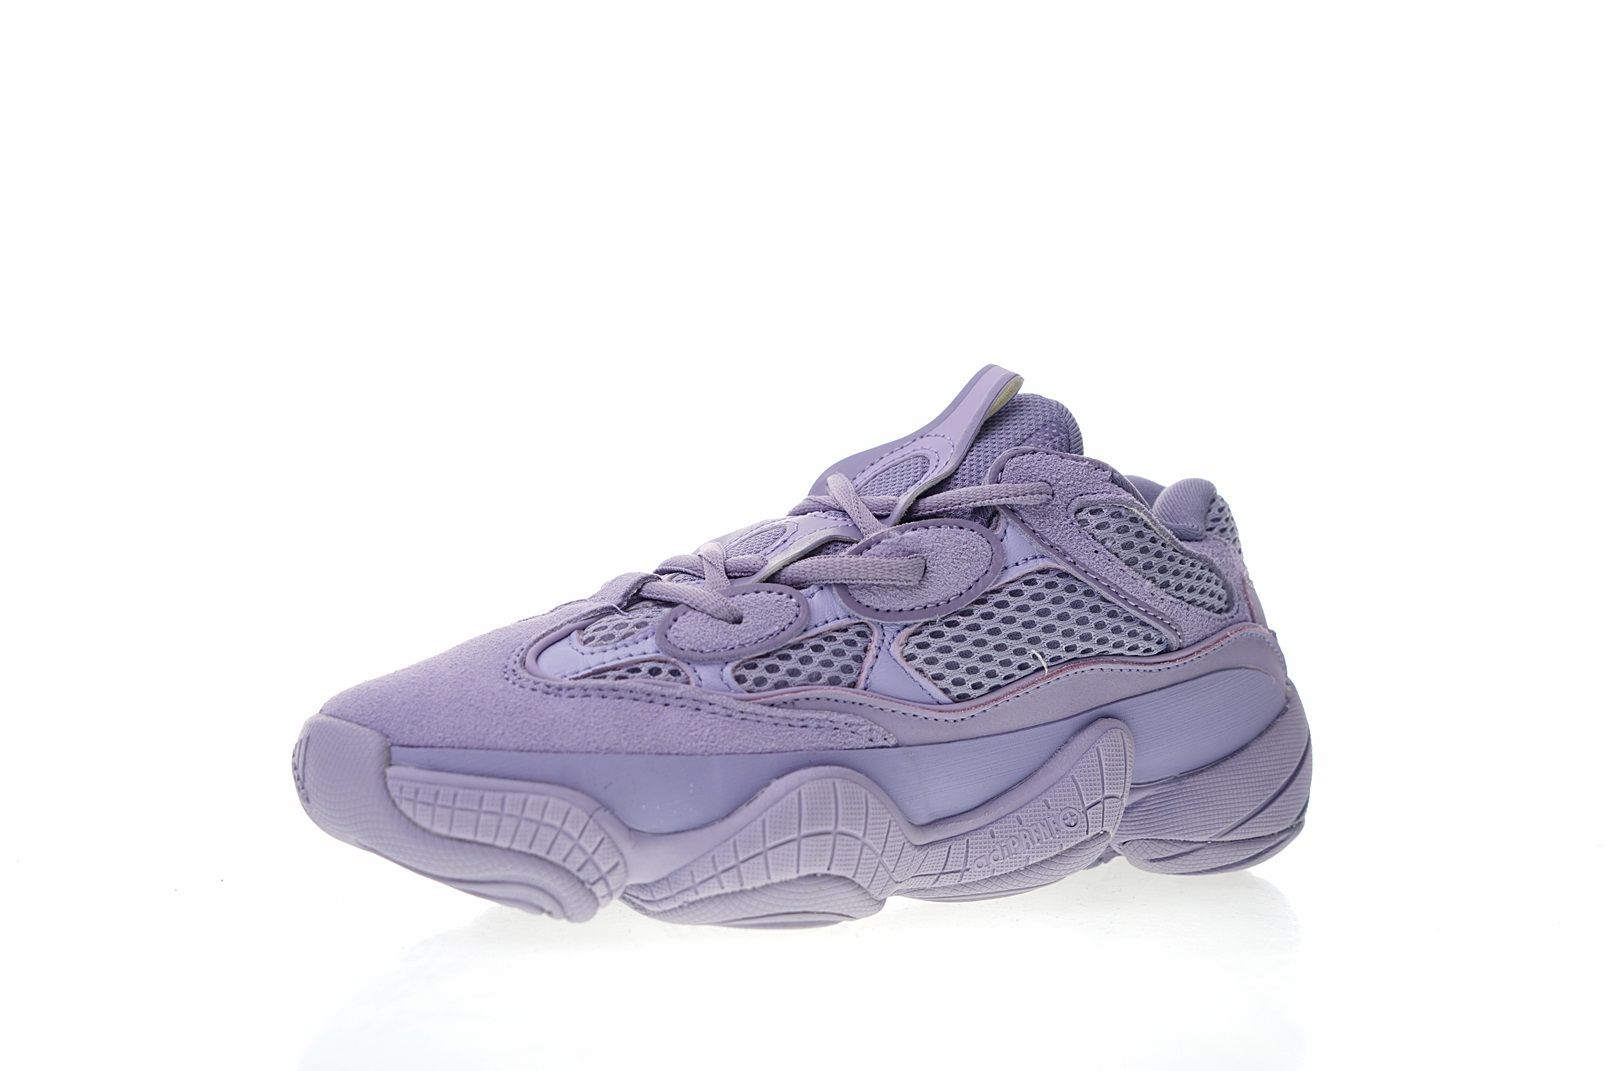 6a389119120c4 ON SALE NOW!! Grade School Sizes Yeezy 500